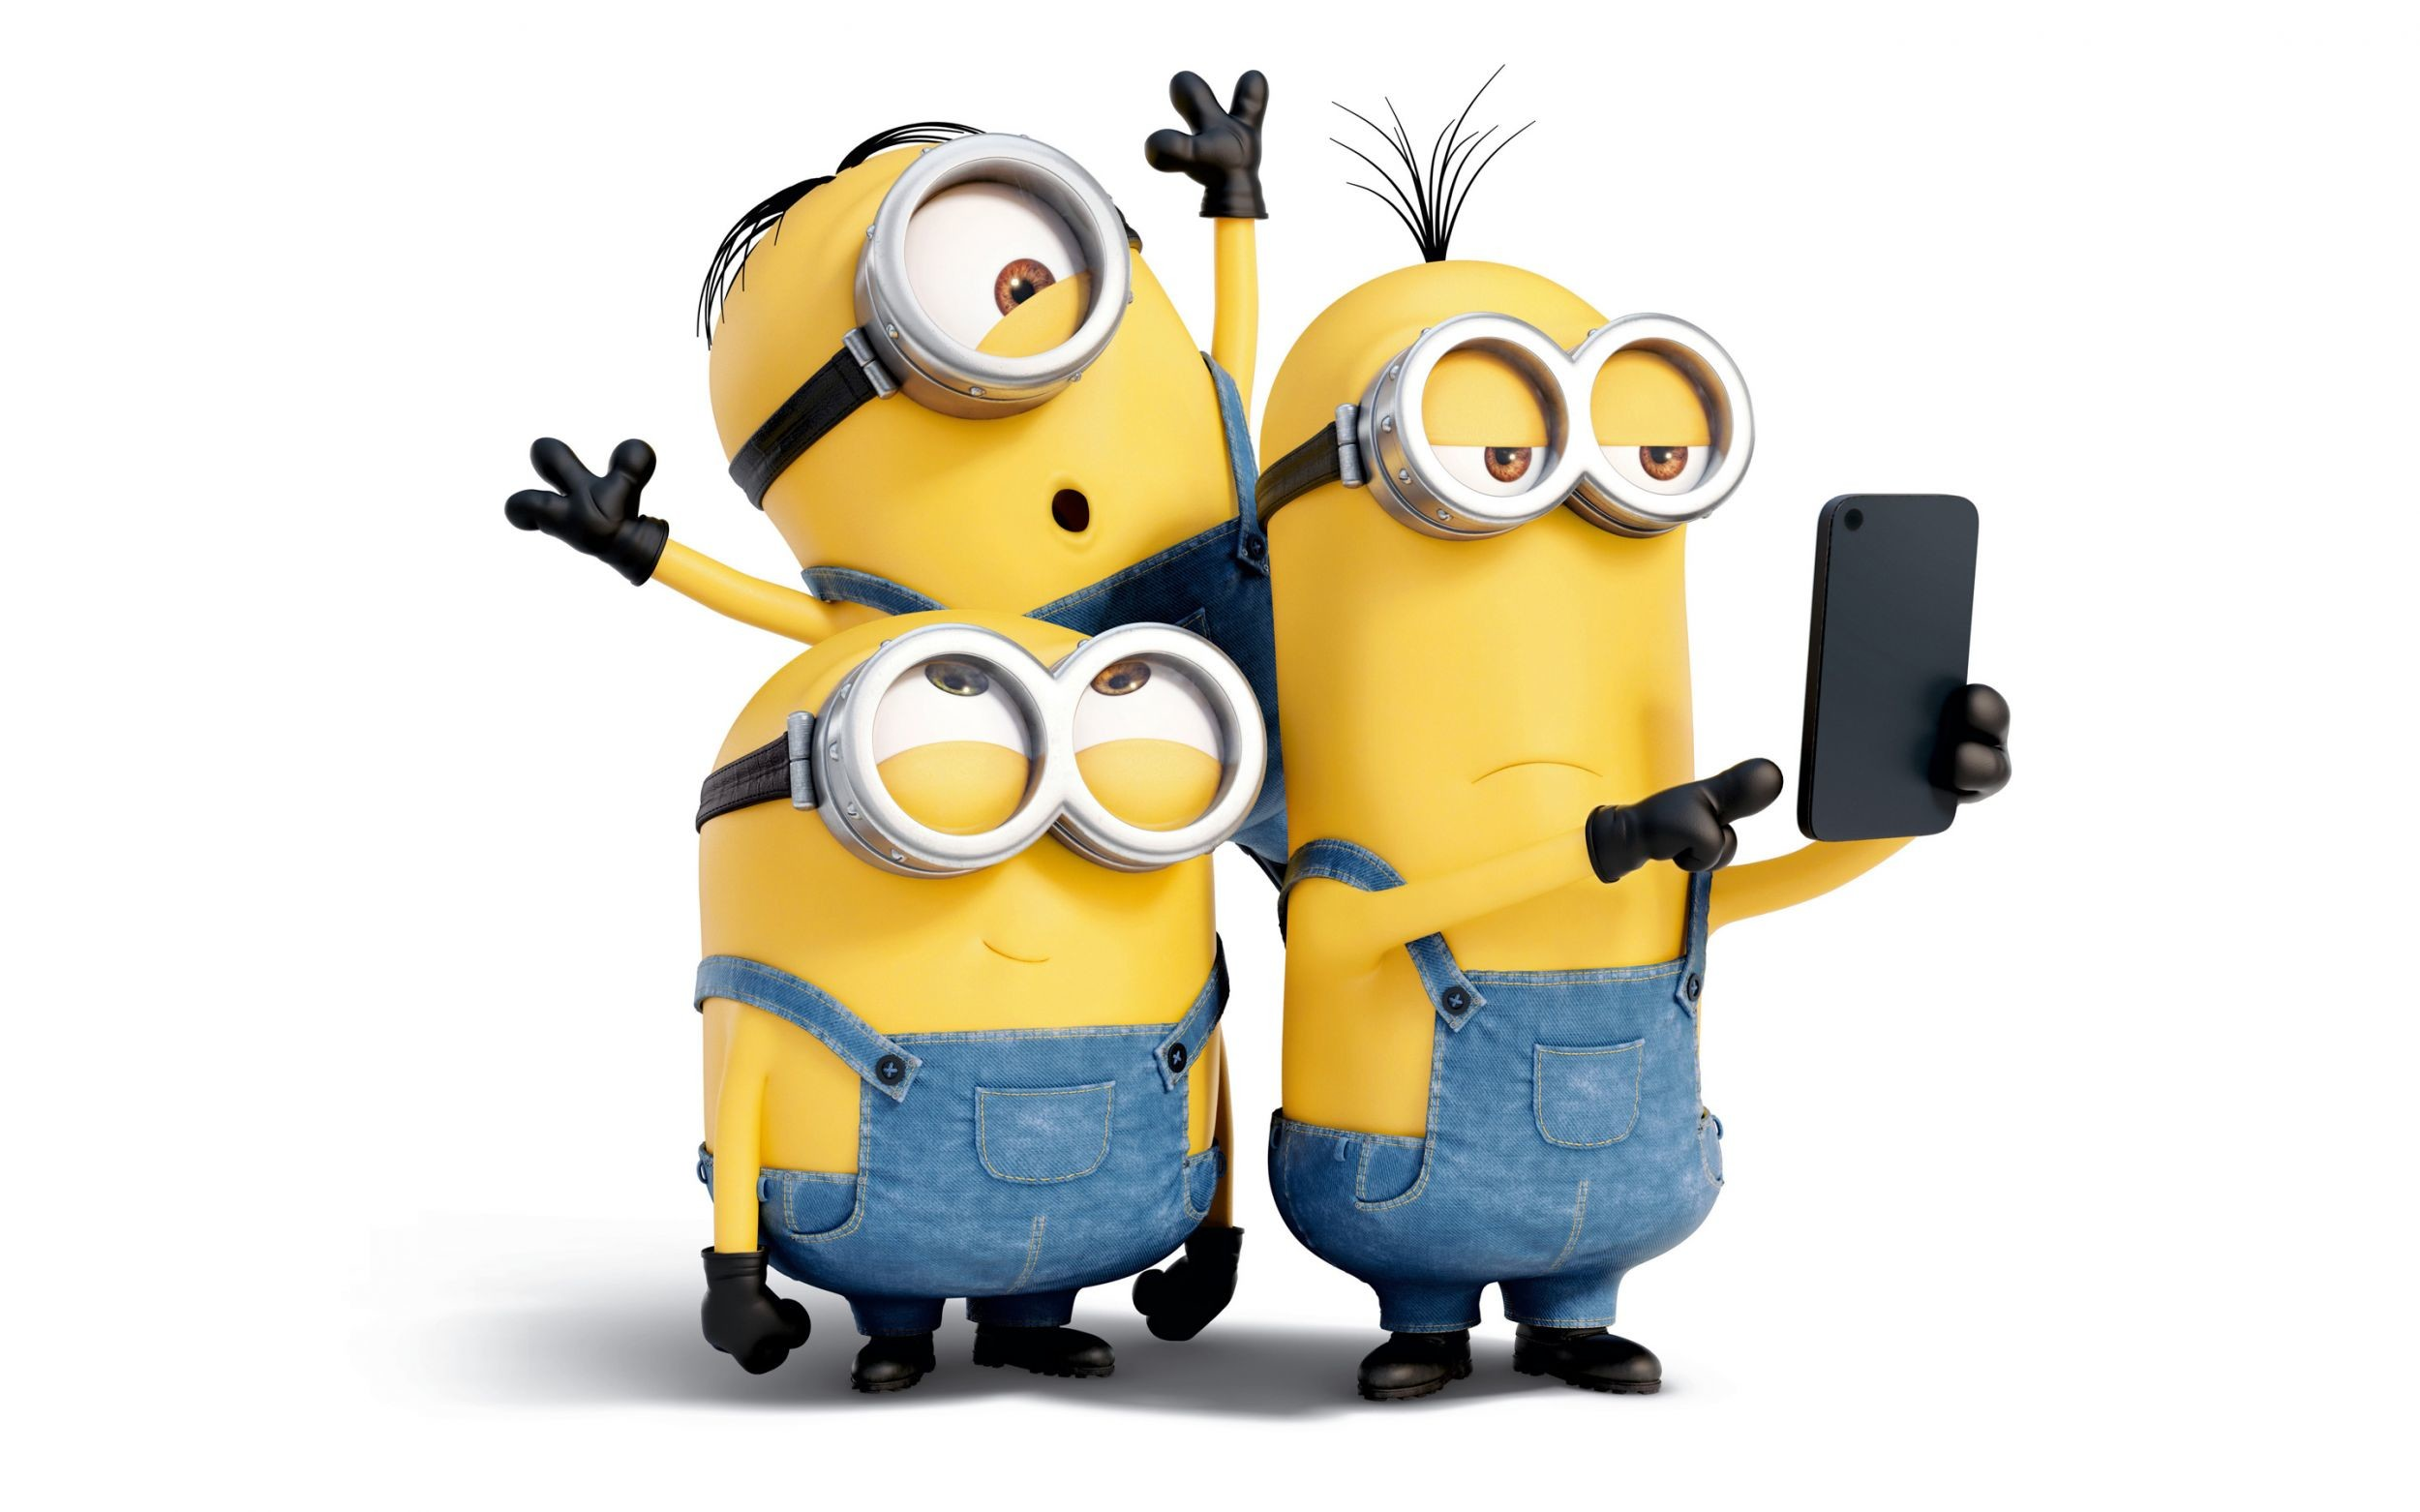 Res: 2500x1562, Minions – Minions Images, Pictures, Wallpapers on Wallpapers and Pictures  BackGrounds Collection – download